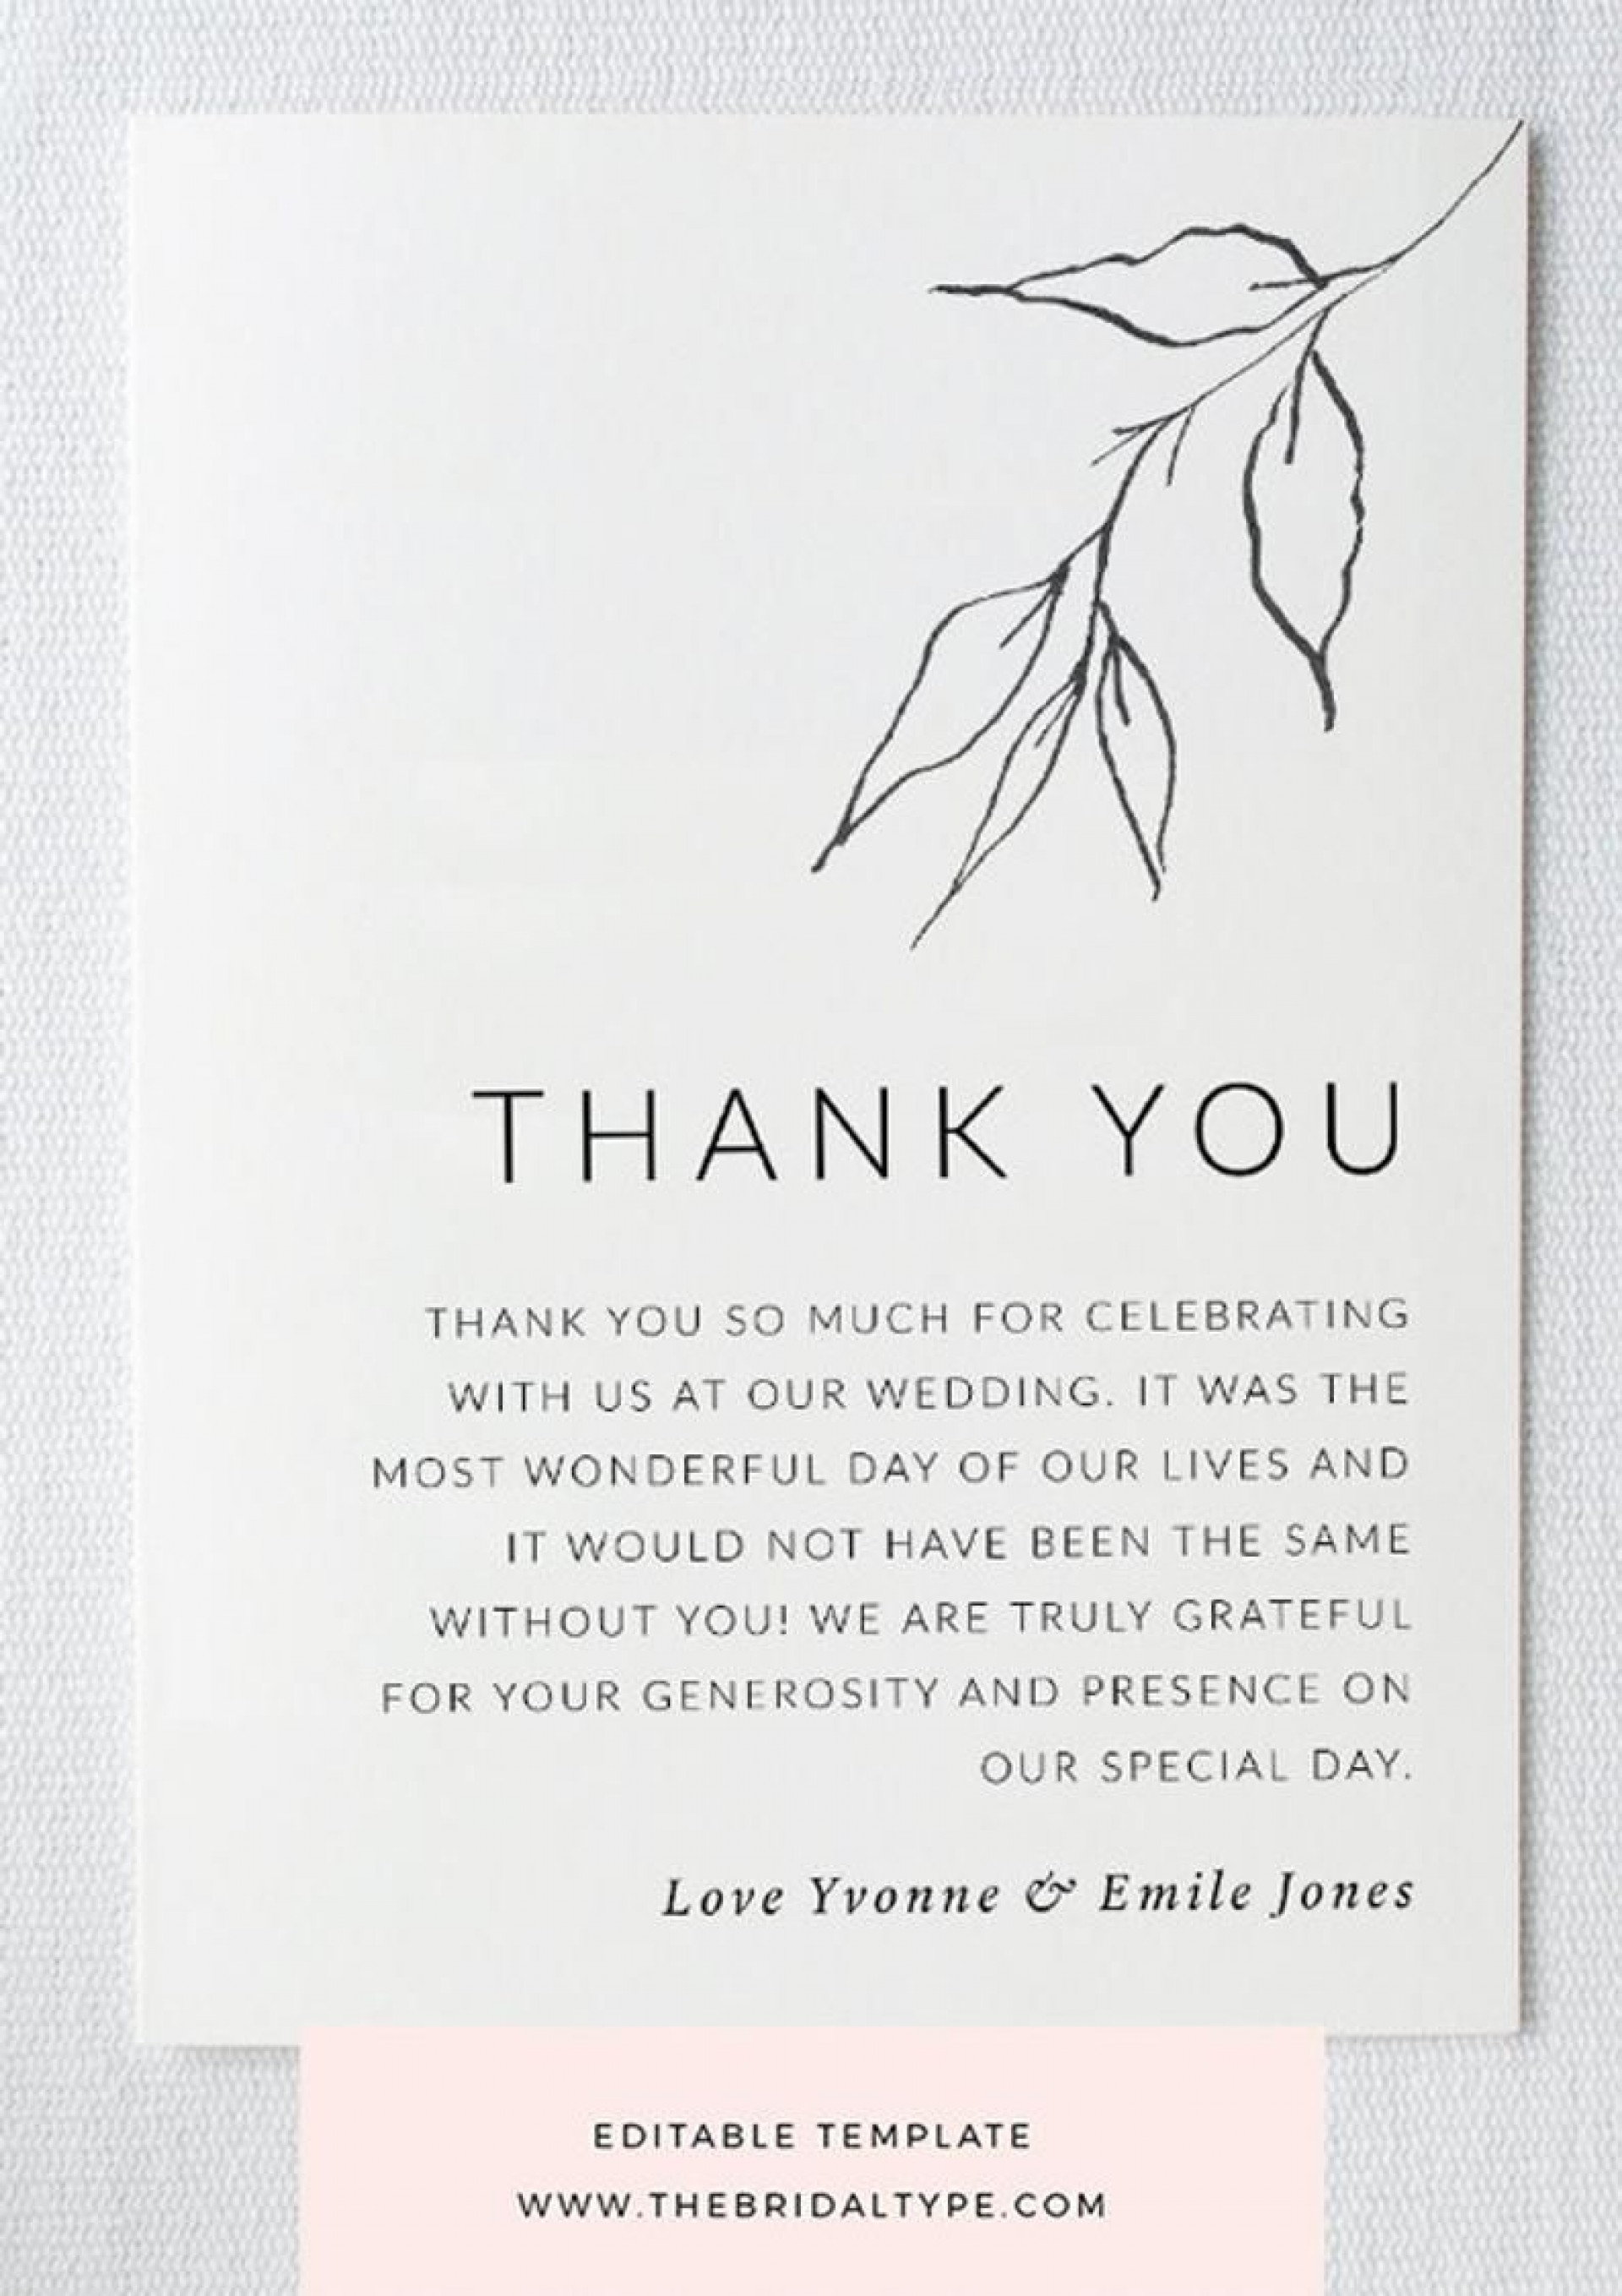 003 Impressive Wedding Thank You Note Template Concept  Templates Shower Card Etsy Bridal Format1920